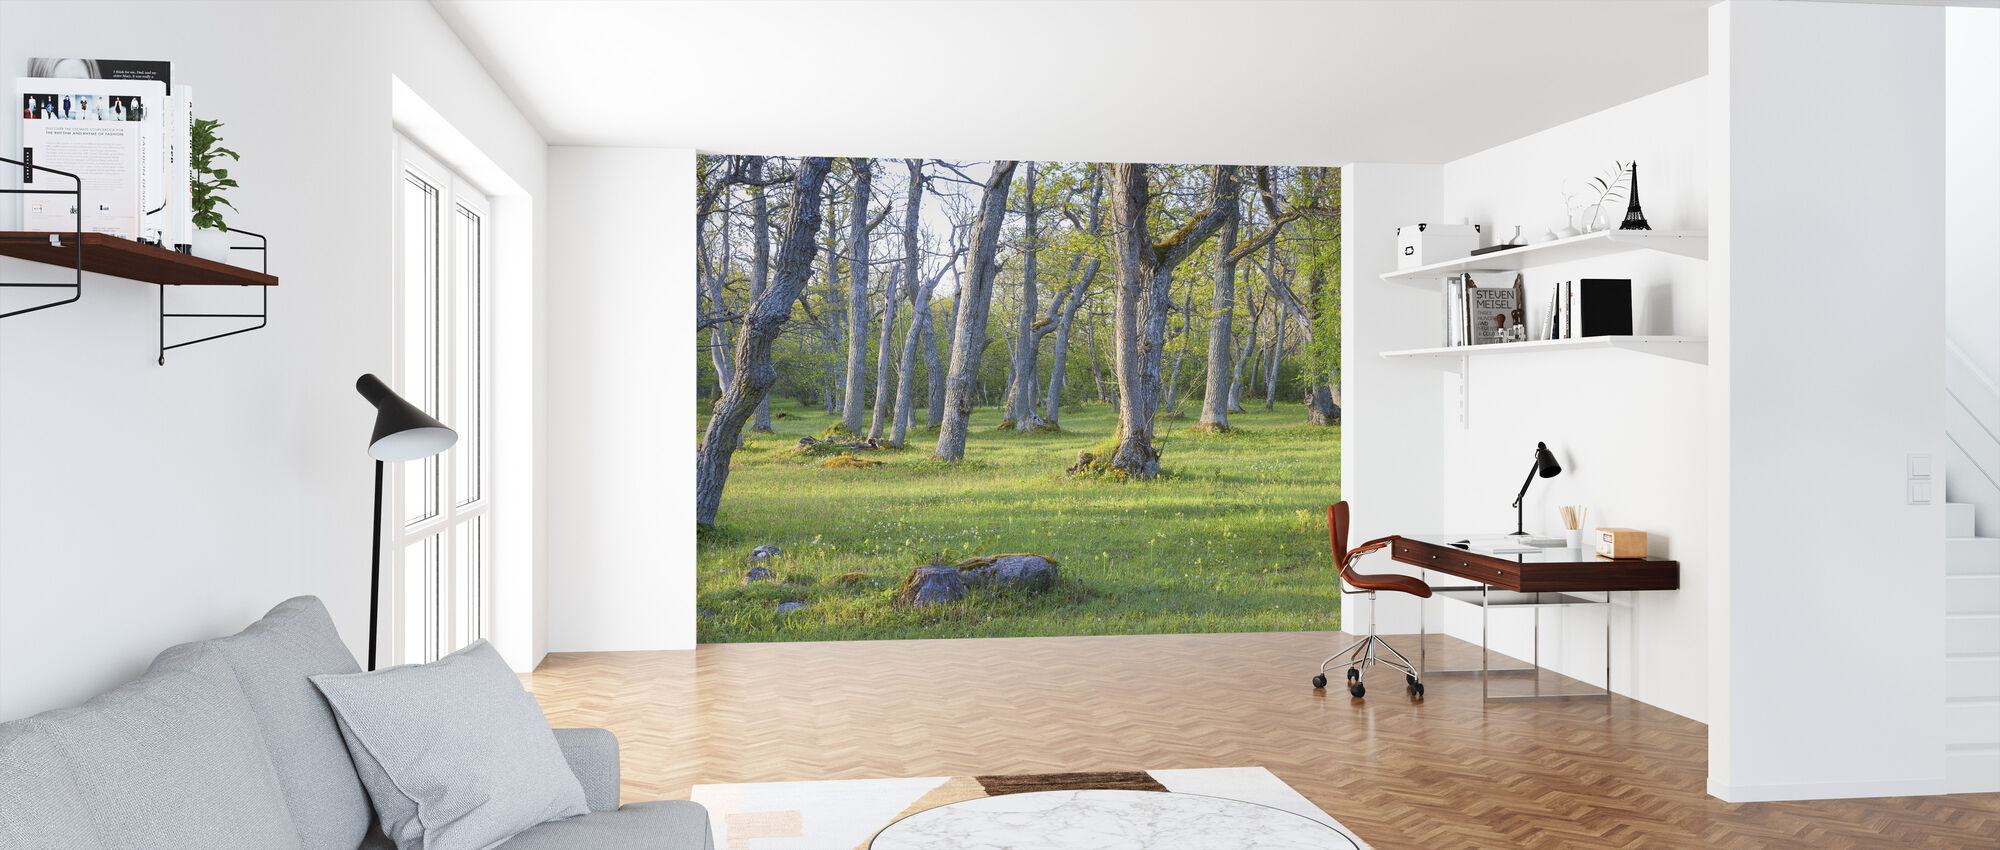 Meadow - Wallpaper - Office